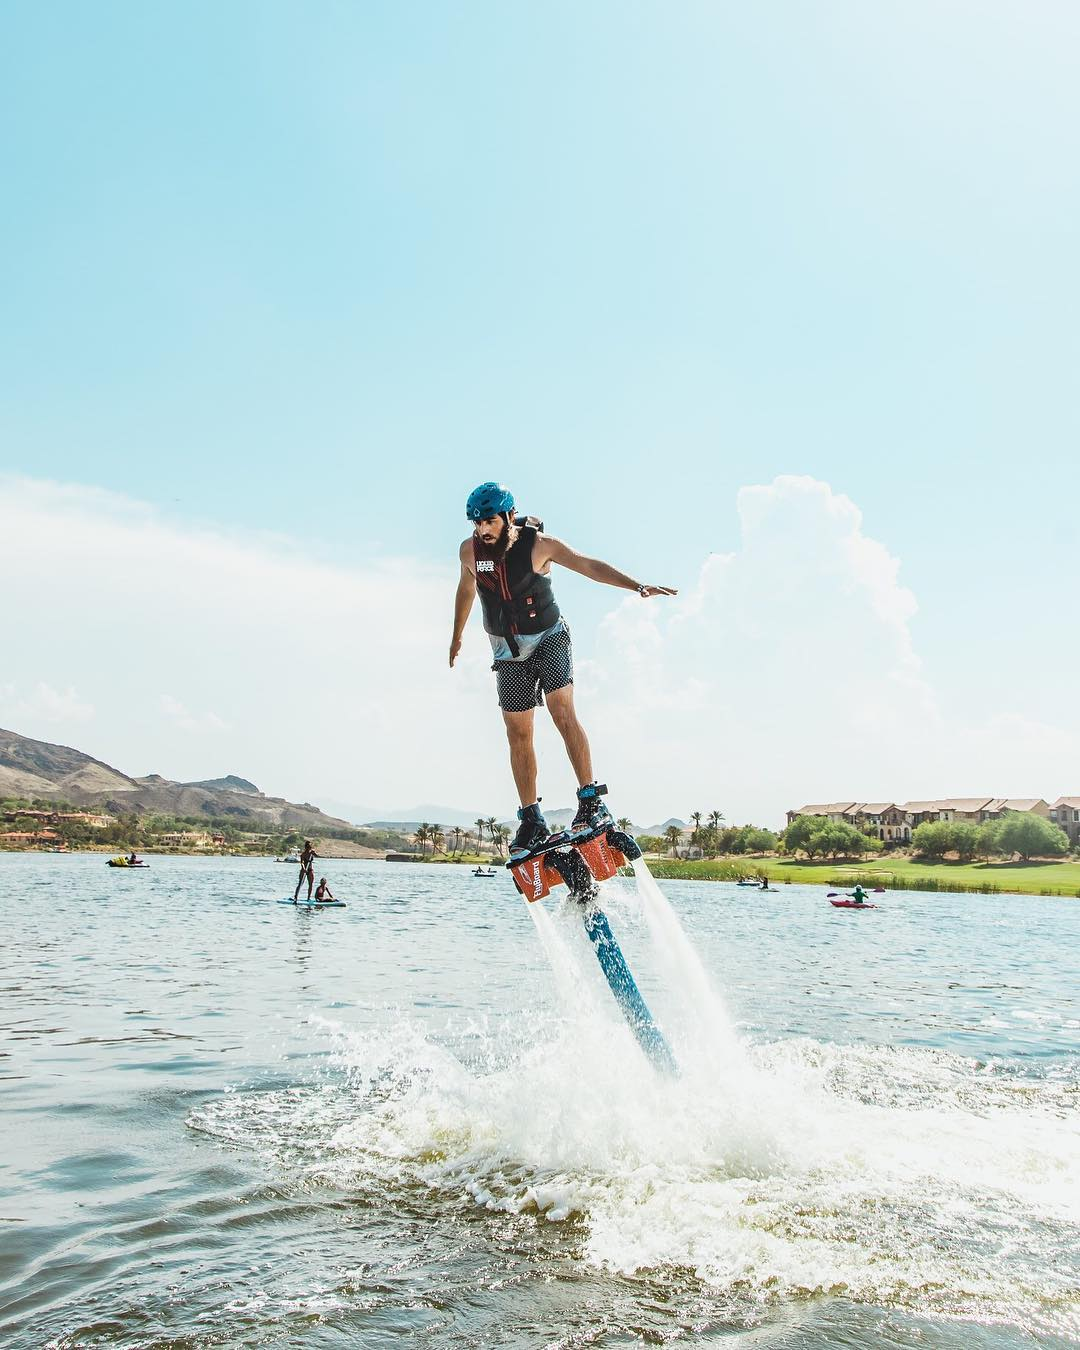 Lake Las Vegas Water Sports flyboard, man shooting out of water with jetpack under his feet.